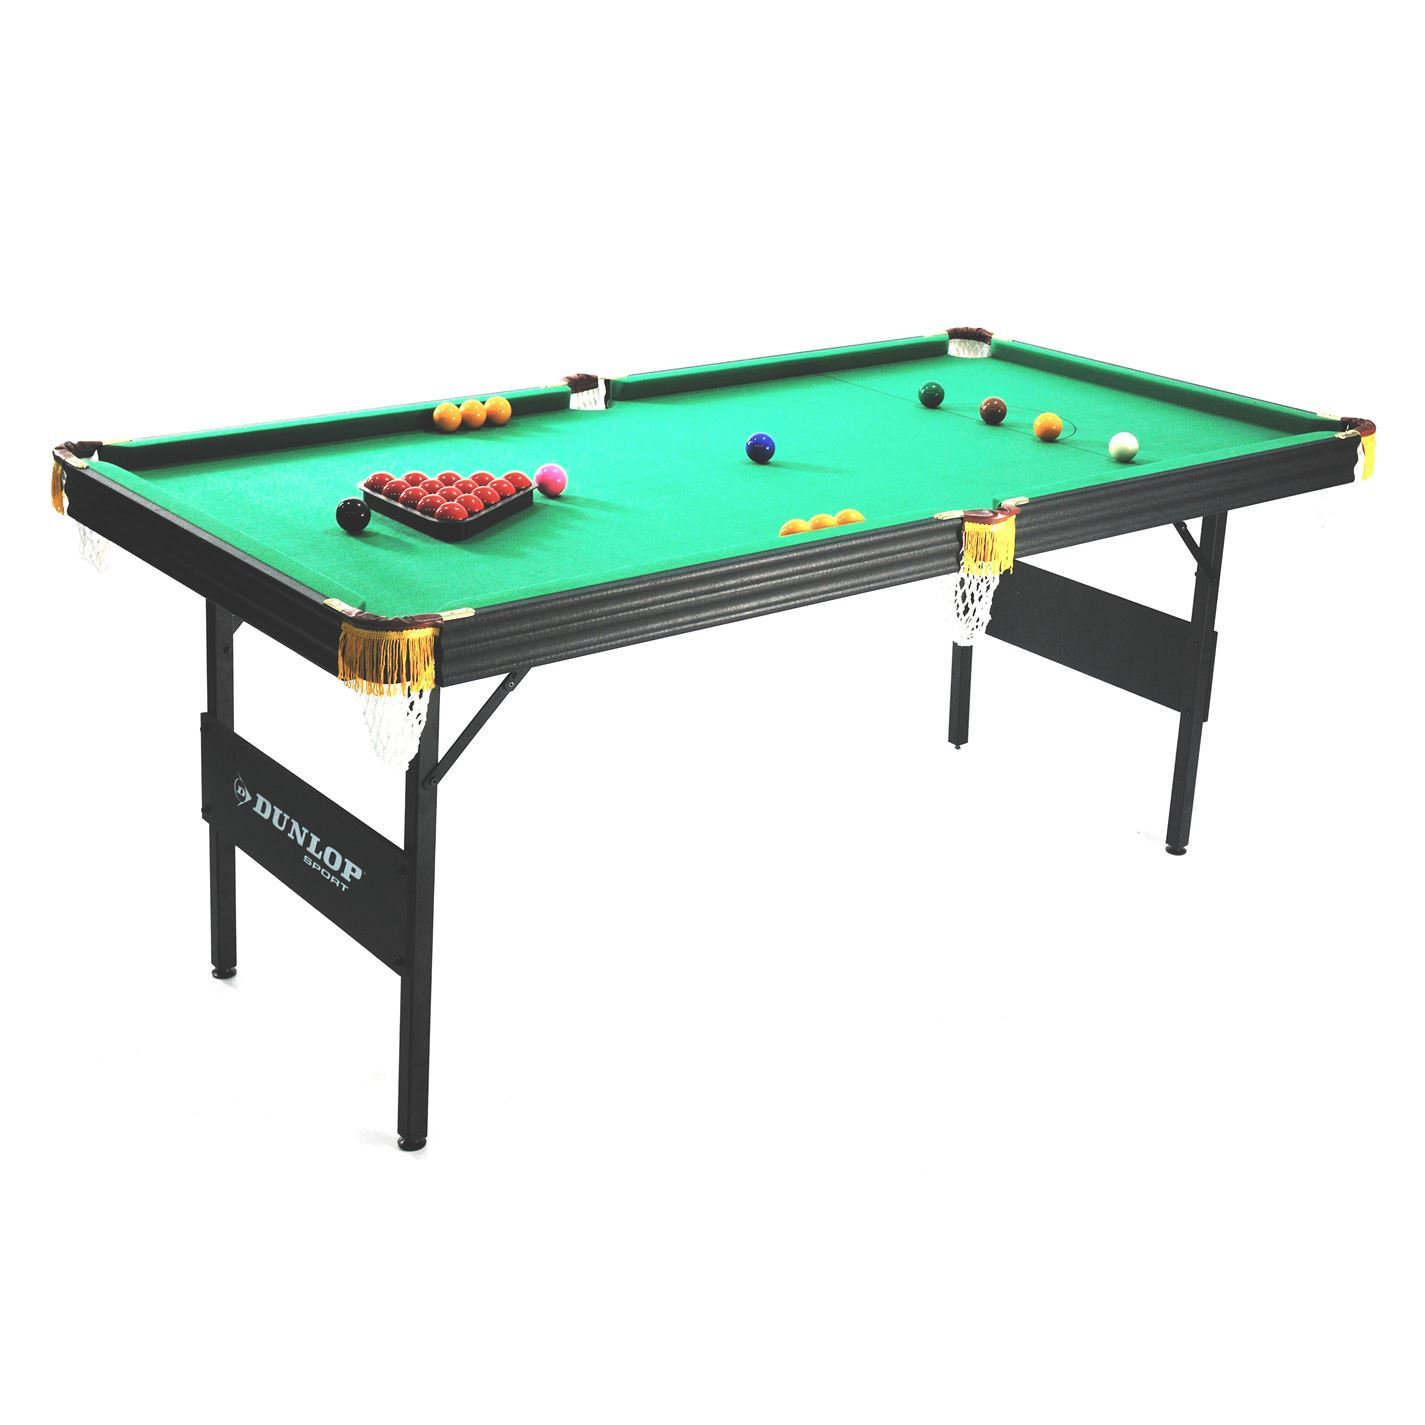 Dunlop 6ft Snooker Pool Table Folding Design Play Game